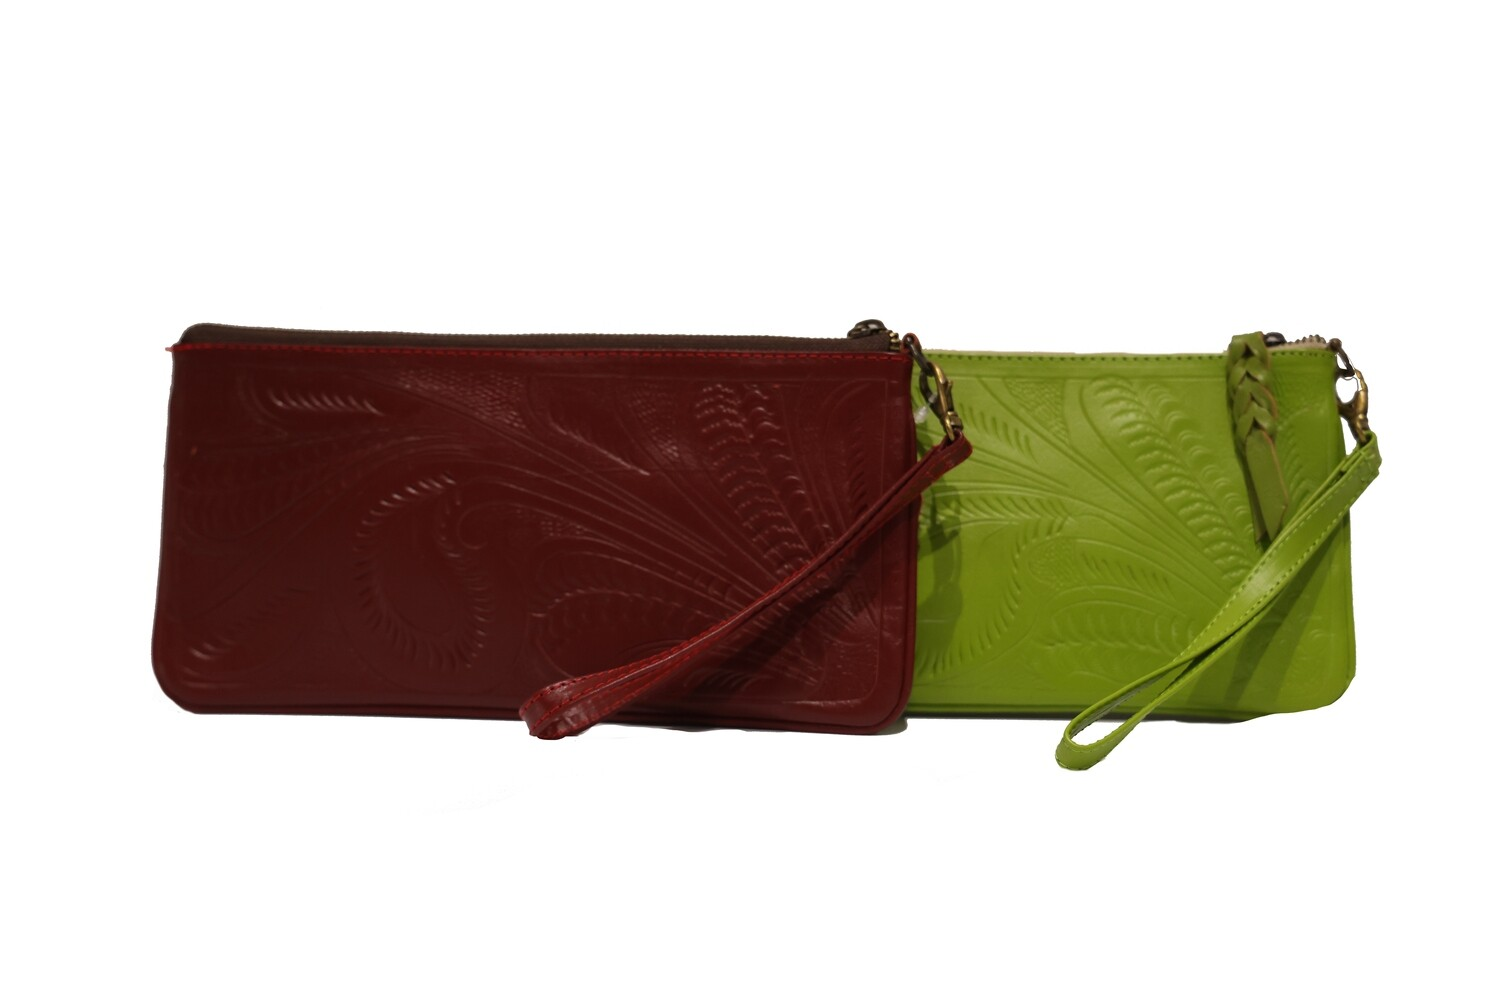 Paraguay Tooled Leather Wristlet